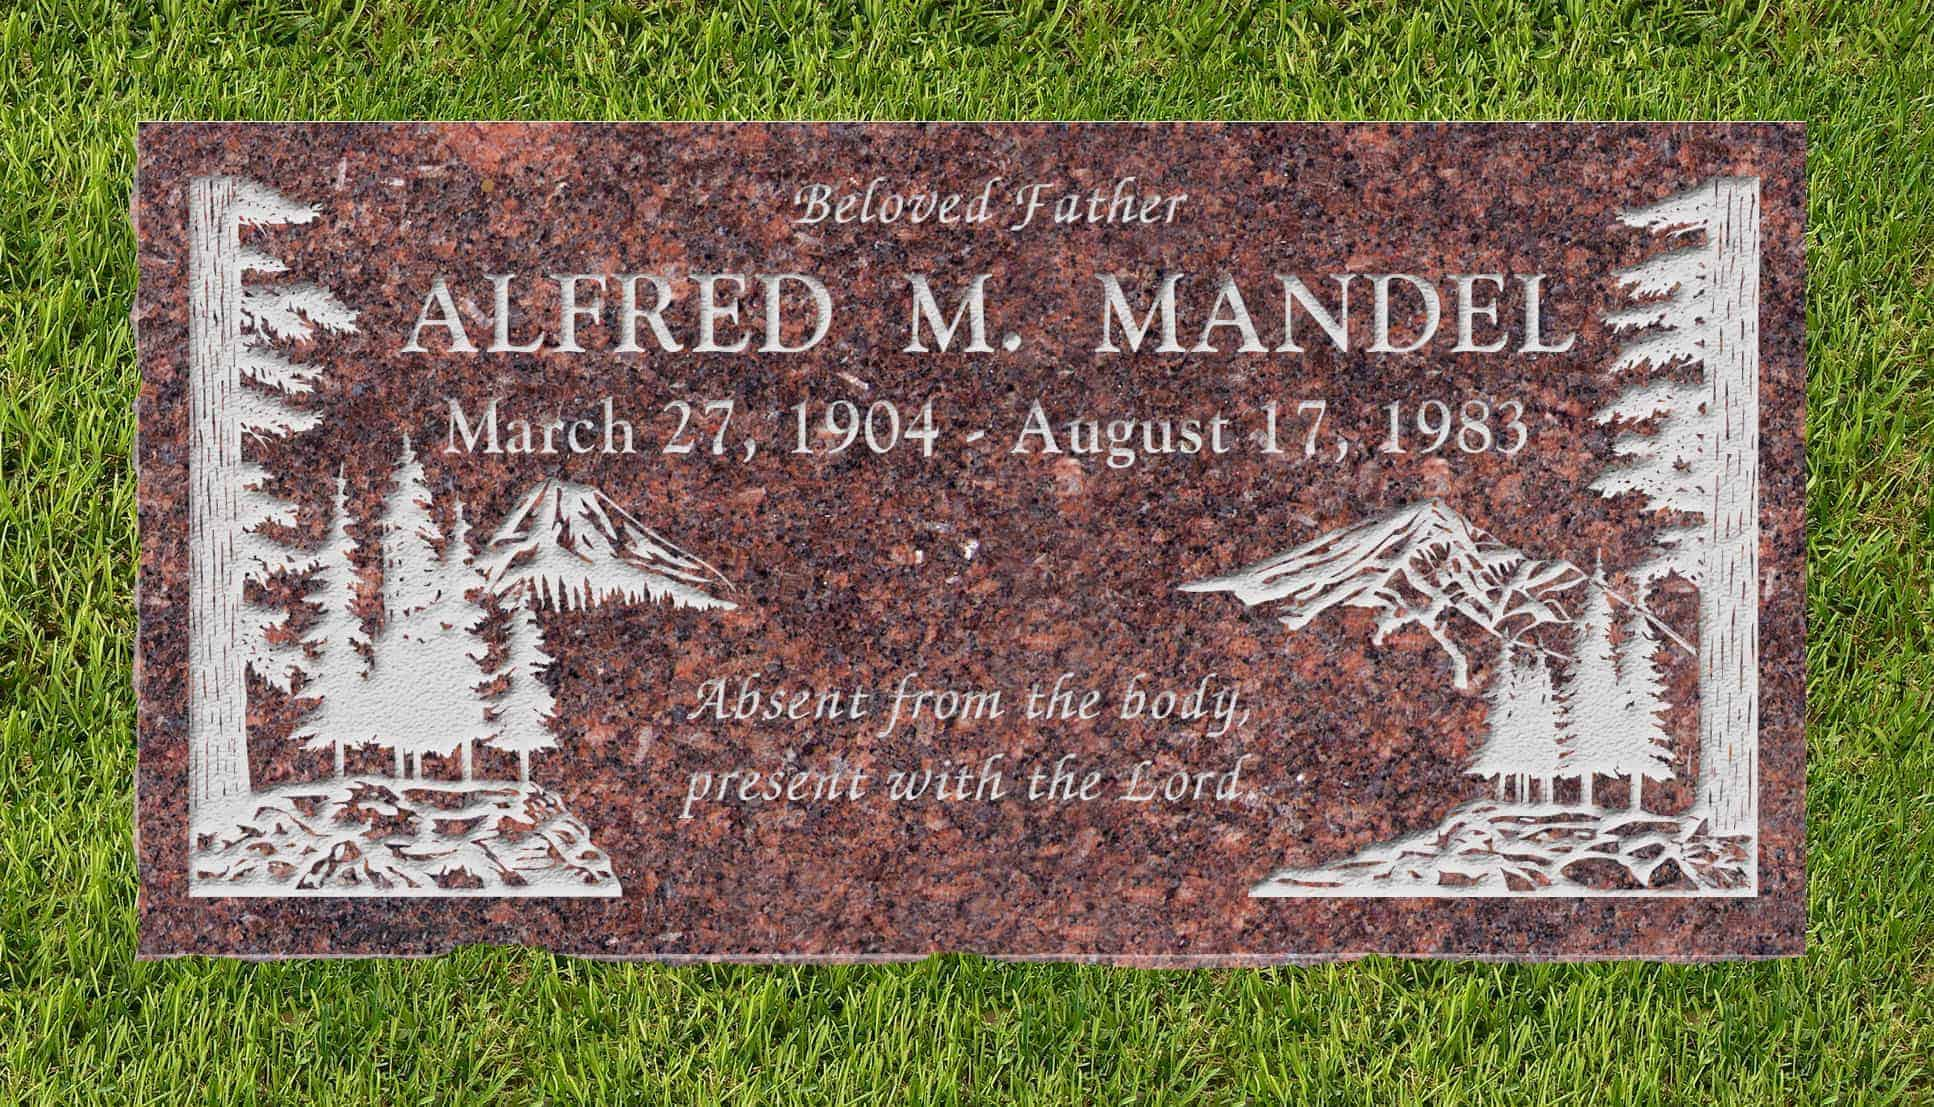 24inch_x_12inch_x_3inch_Flat_Granite_Headstone_in_Mahogany_with_design_S-4_installed_in_ground